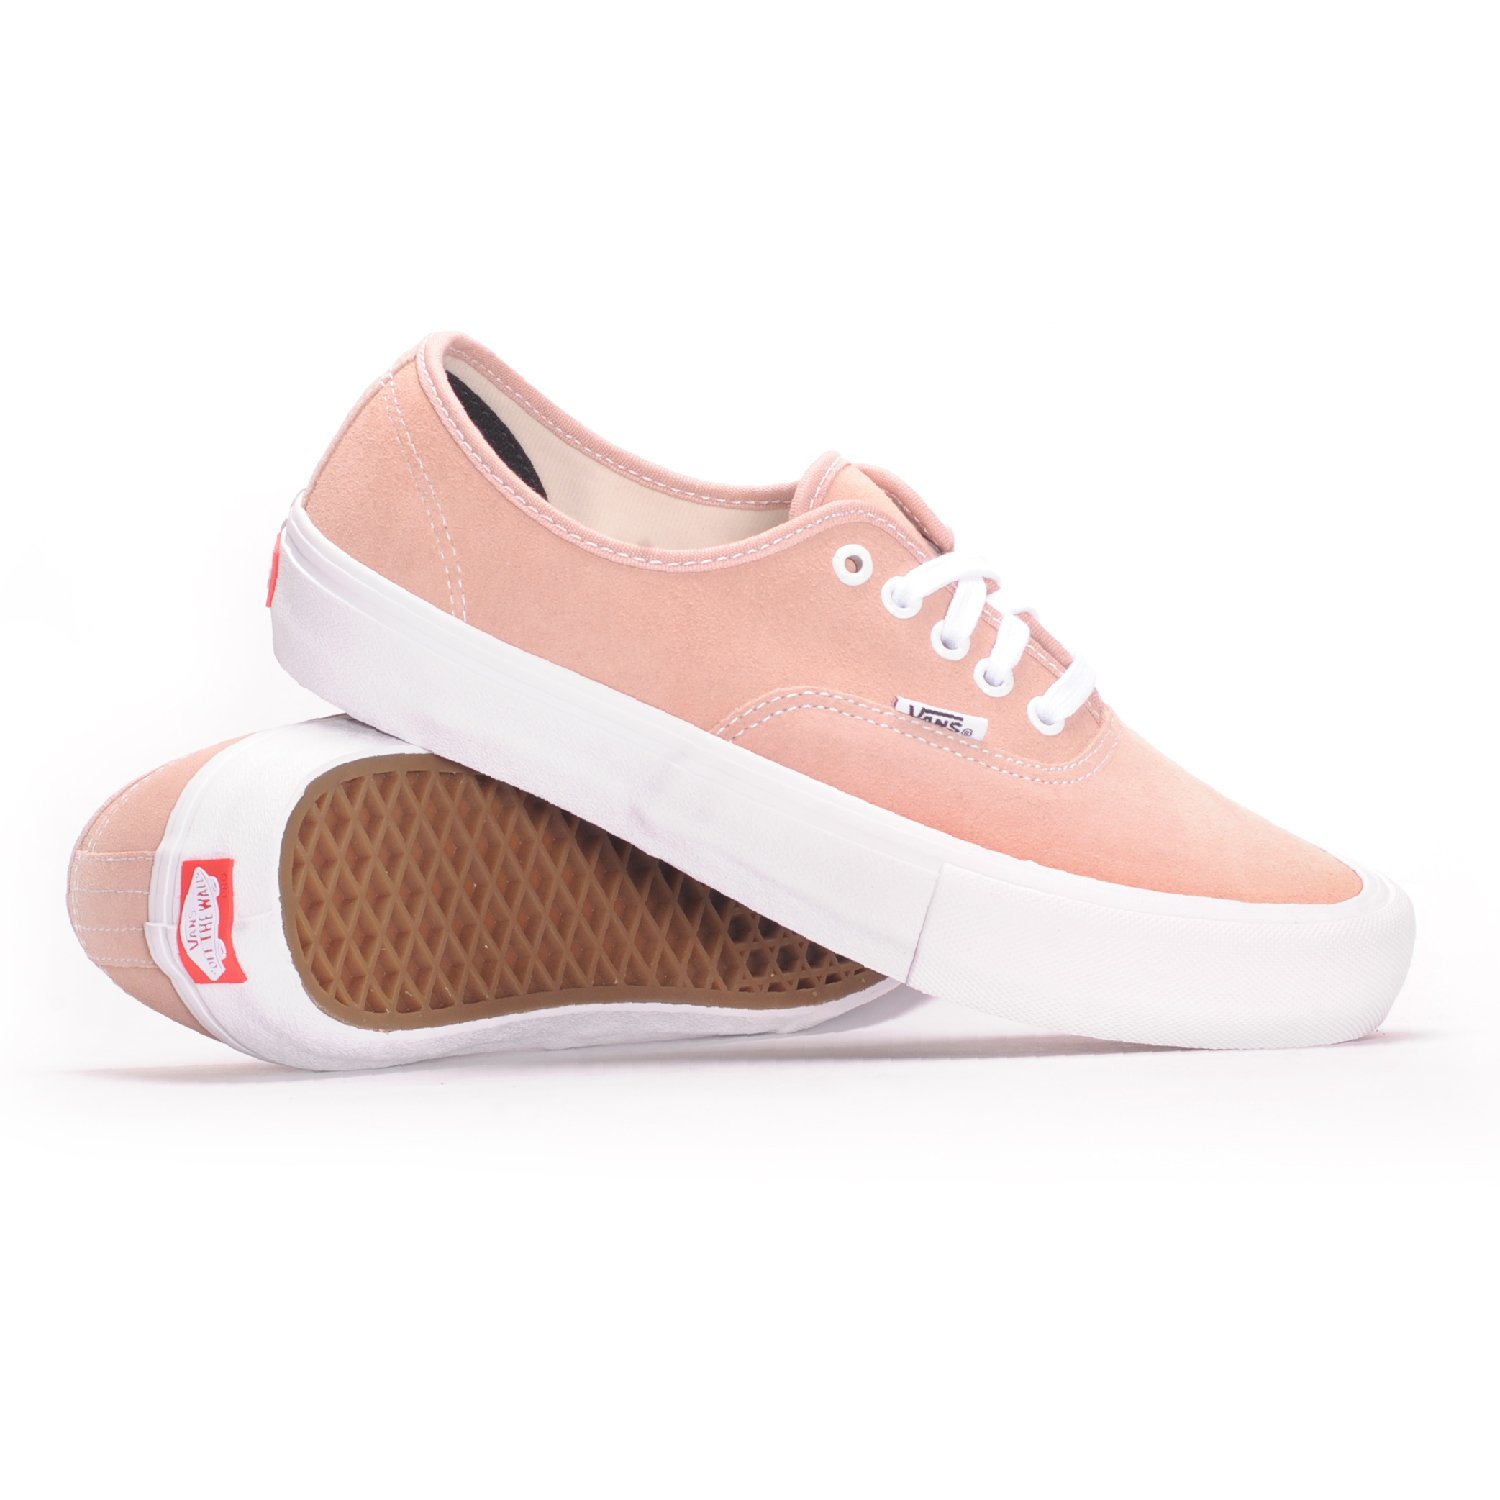 Vans Authentic Pro (Mahogany Rose/White) Men's Skate Shoes-11.5